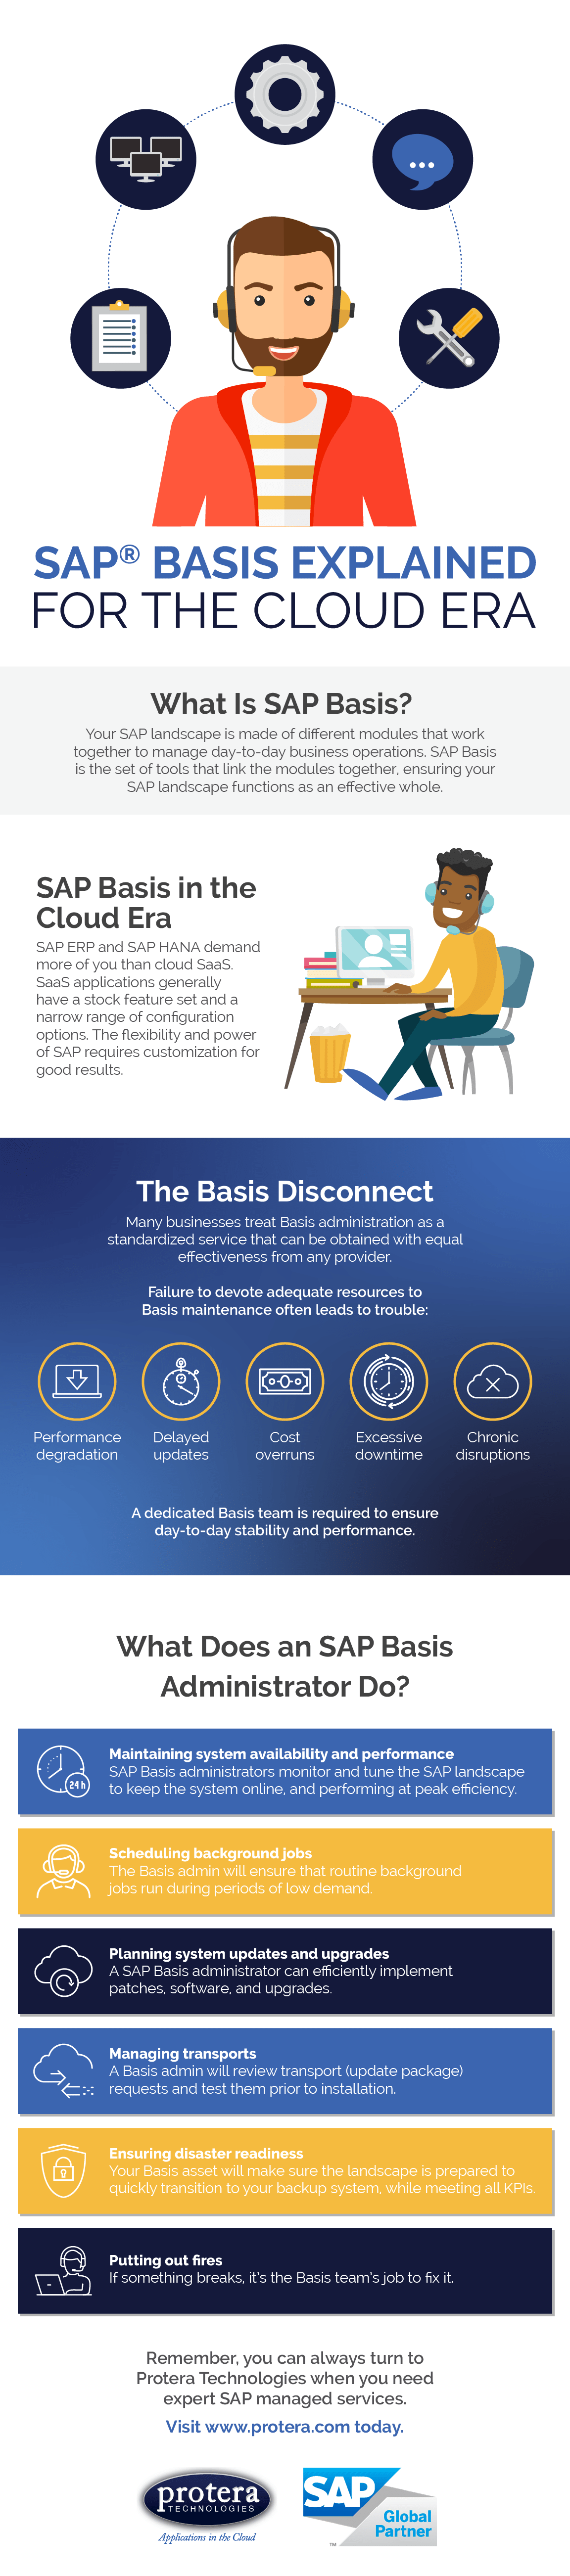 SAP Basis Explained for the Cloud Era Infographic